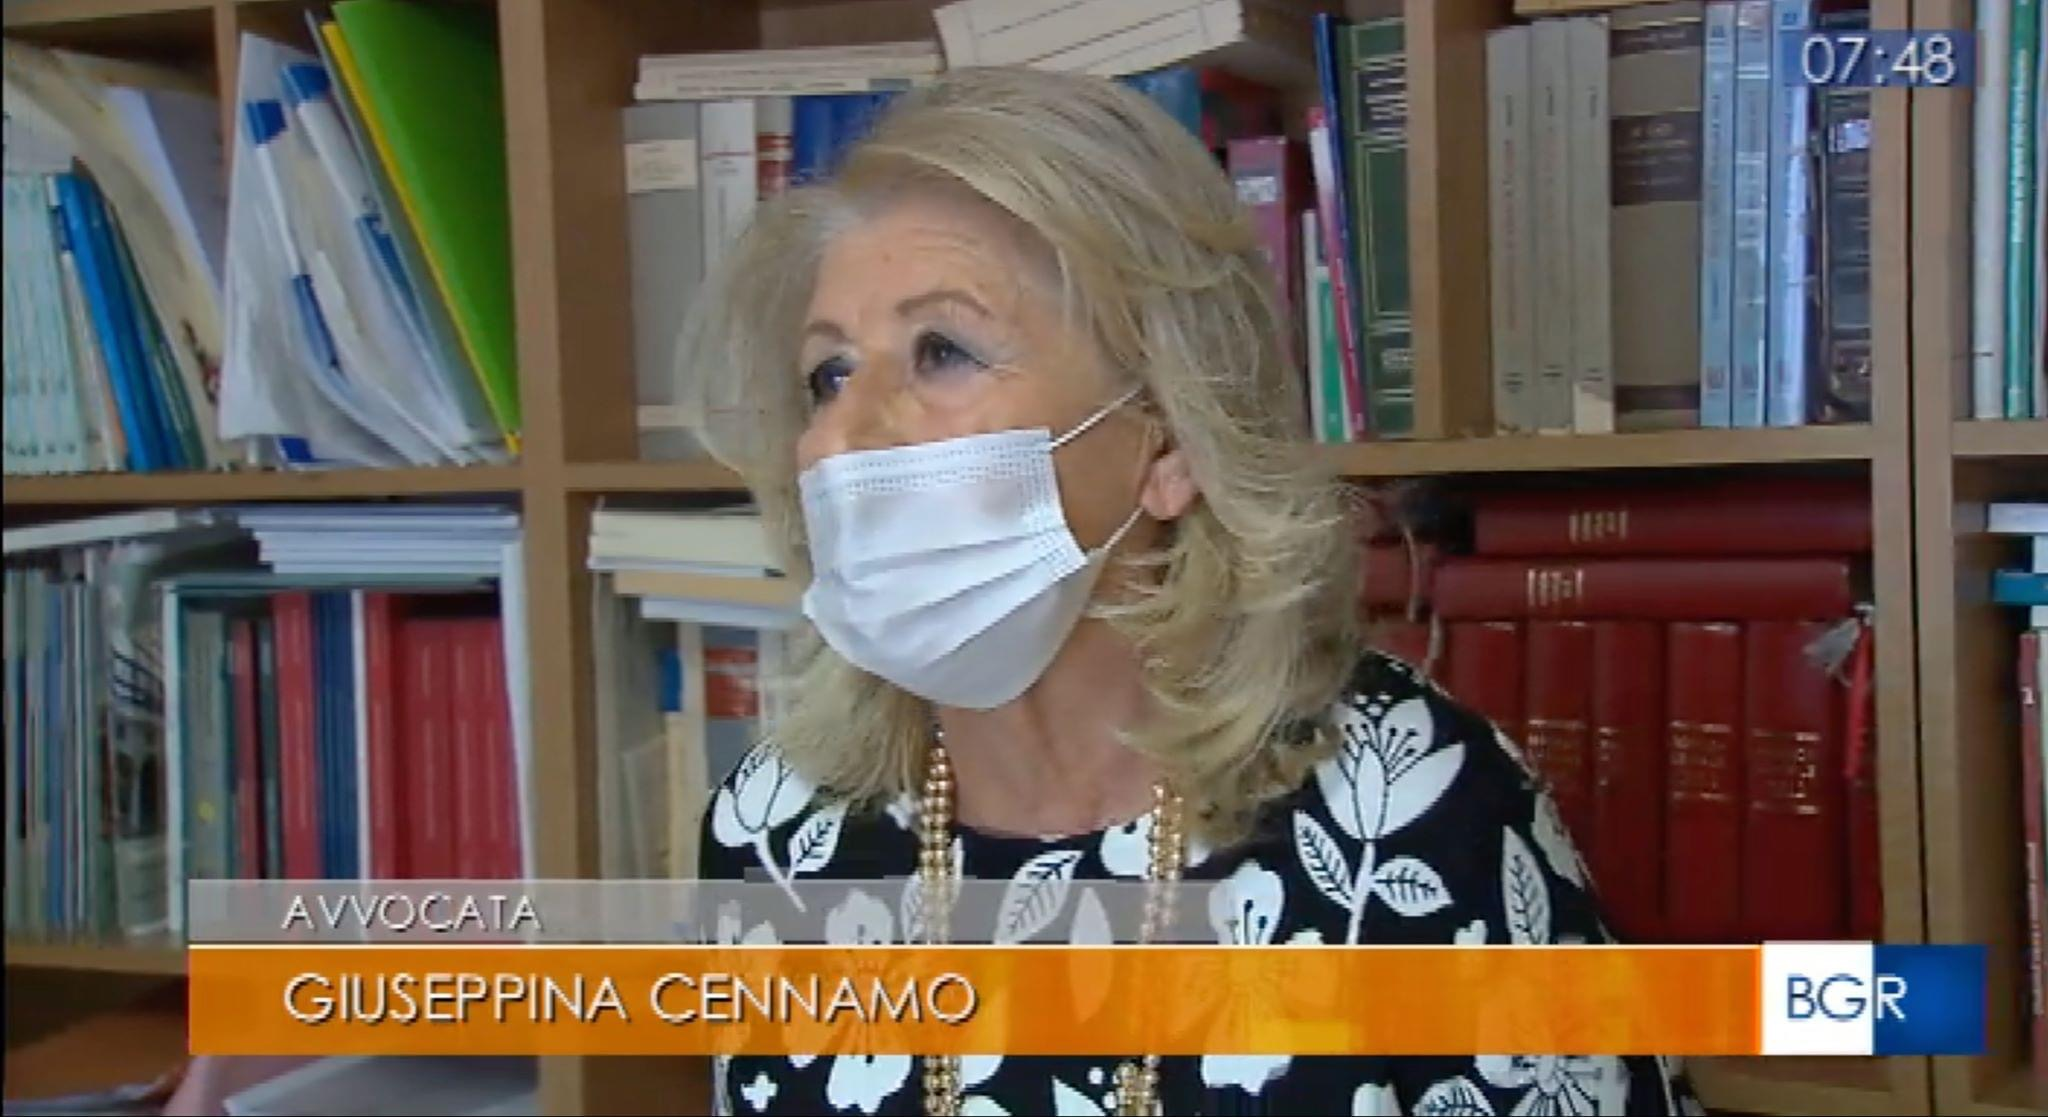 Pina Cennamo interviewed regarding